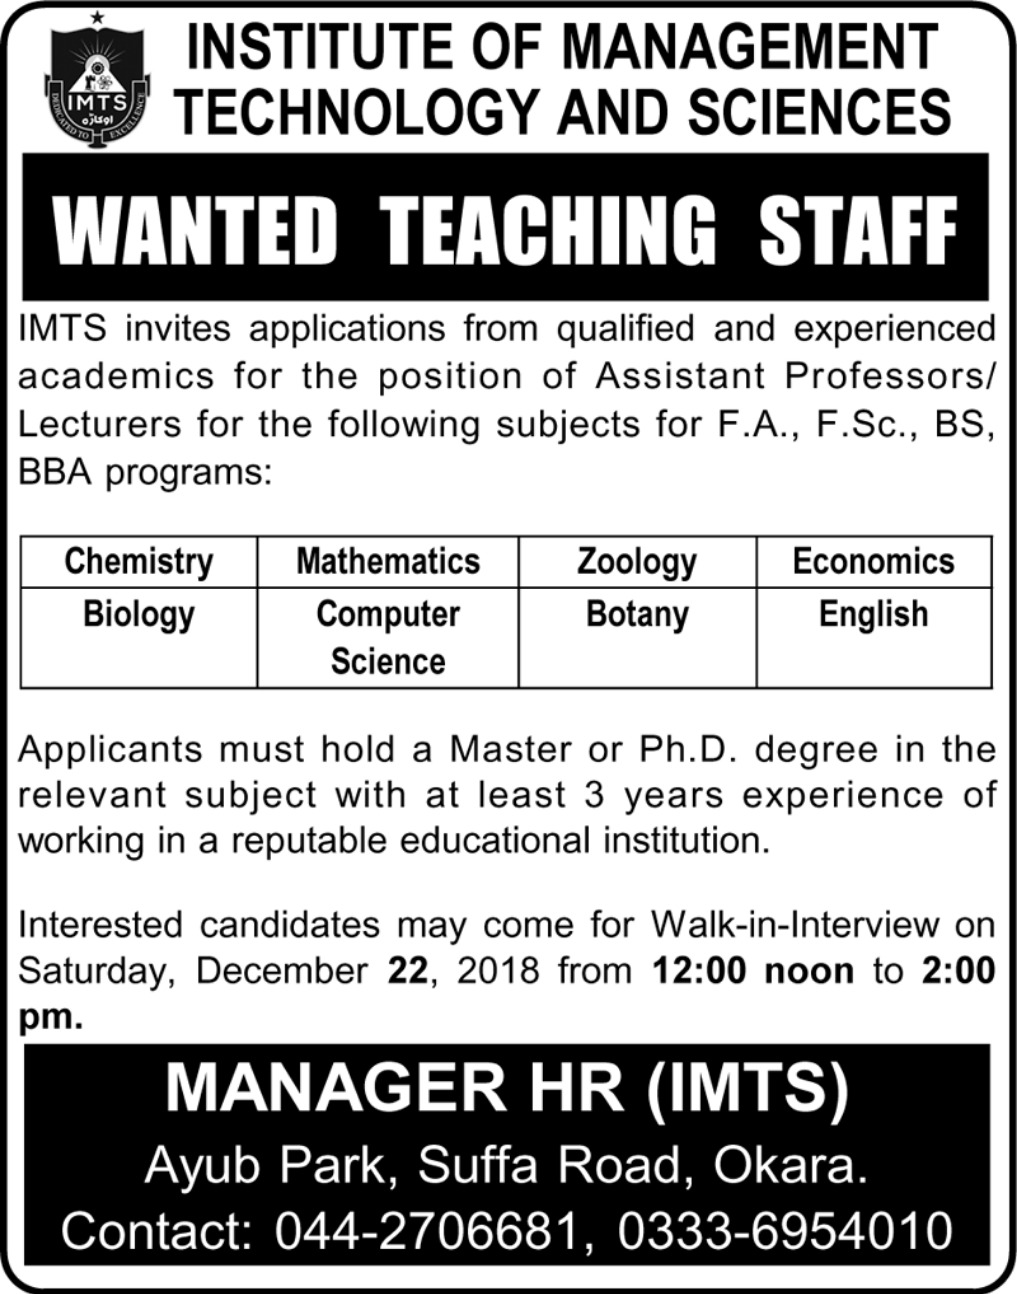 IMTS Jobs 2018 Institute of Management Technology & Sciences